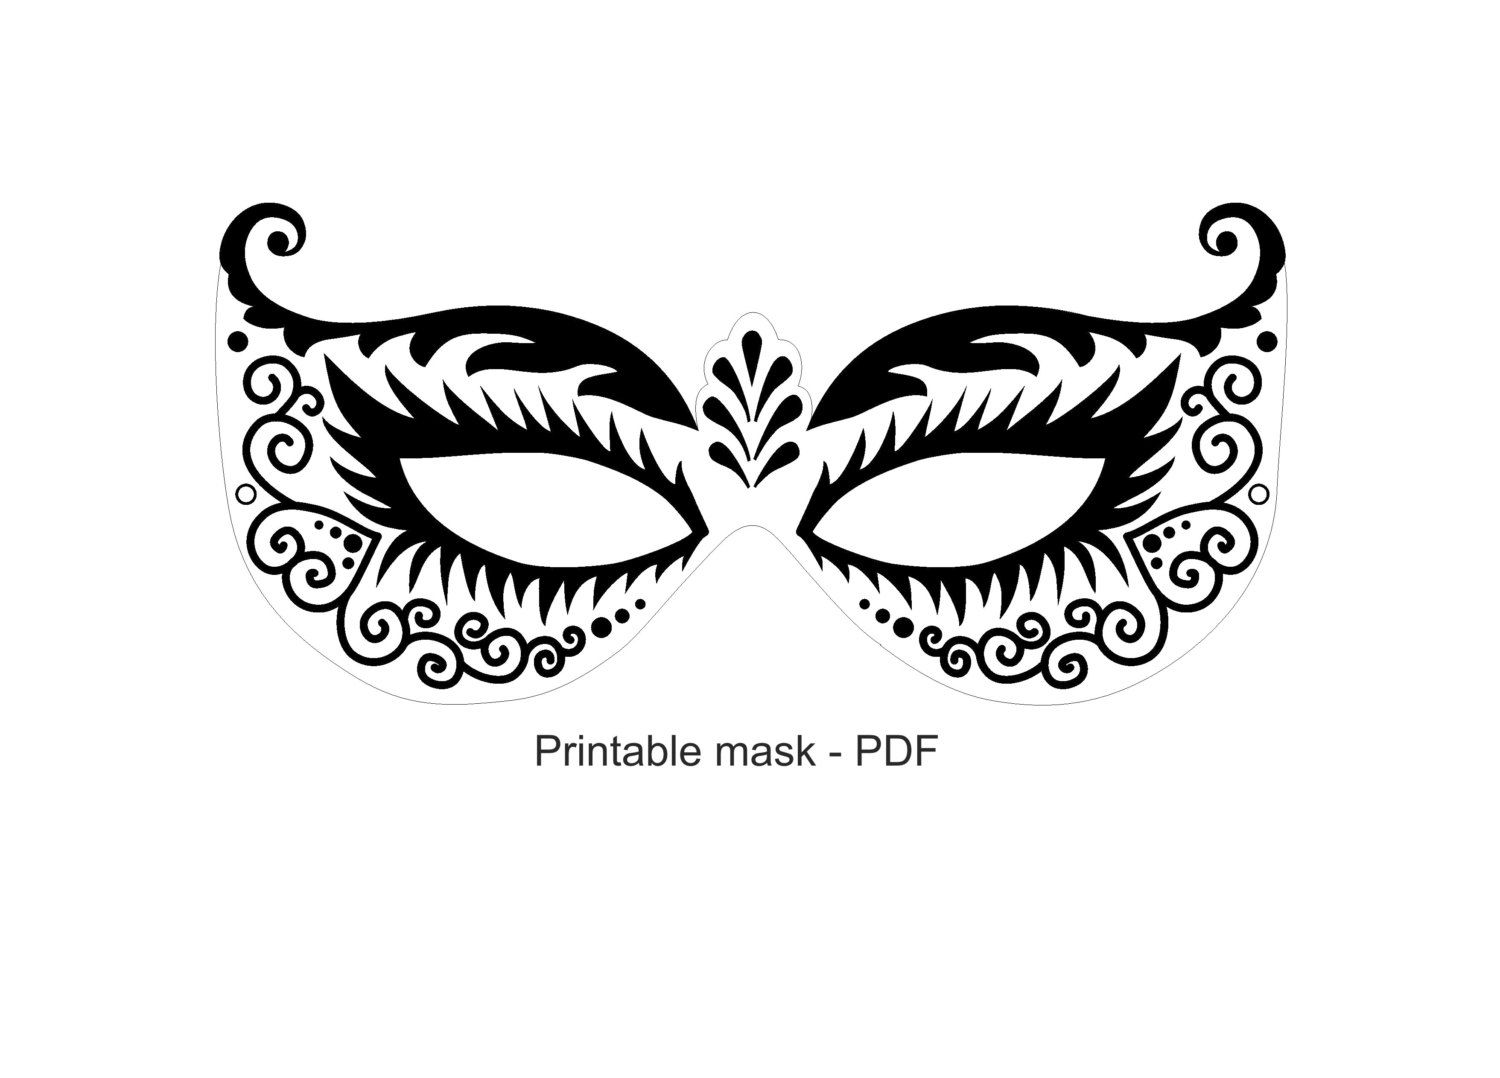 This is a graphic of Nerdy Masquerade Mask Template Printable